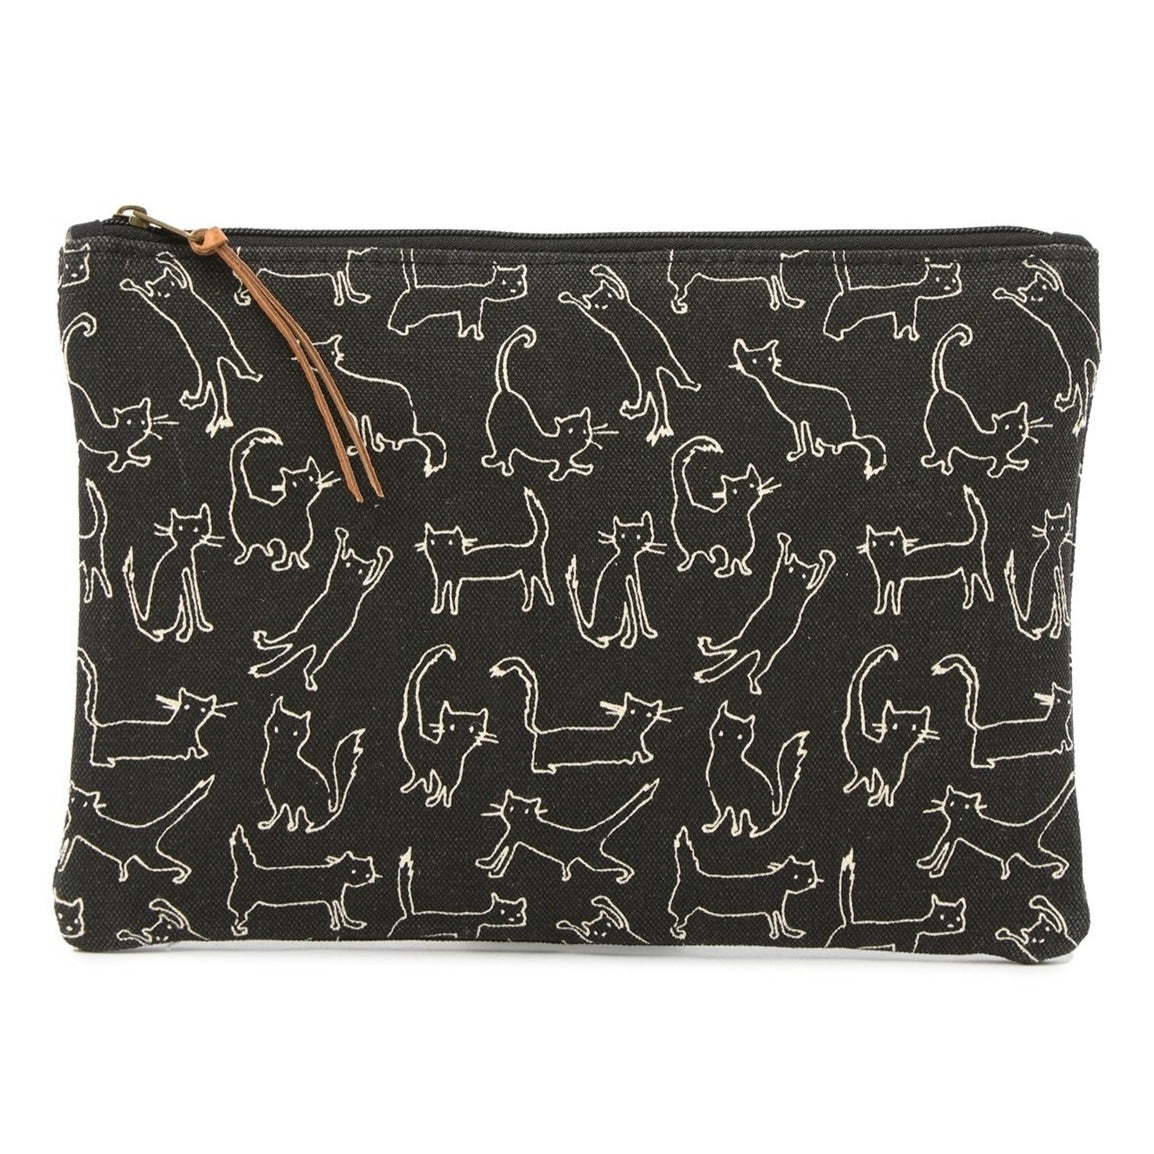 Funny Cat Medium Canvas Pouch by Fringe Studio